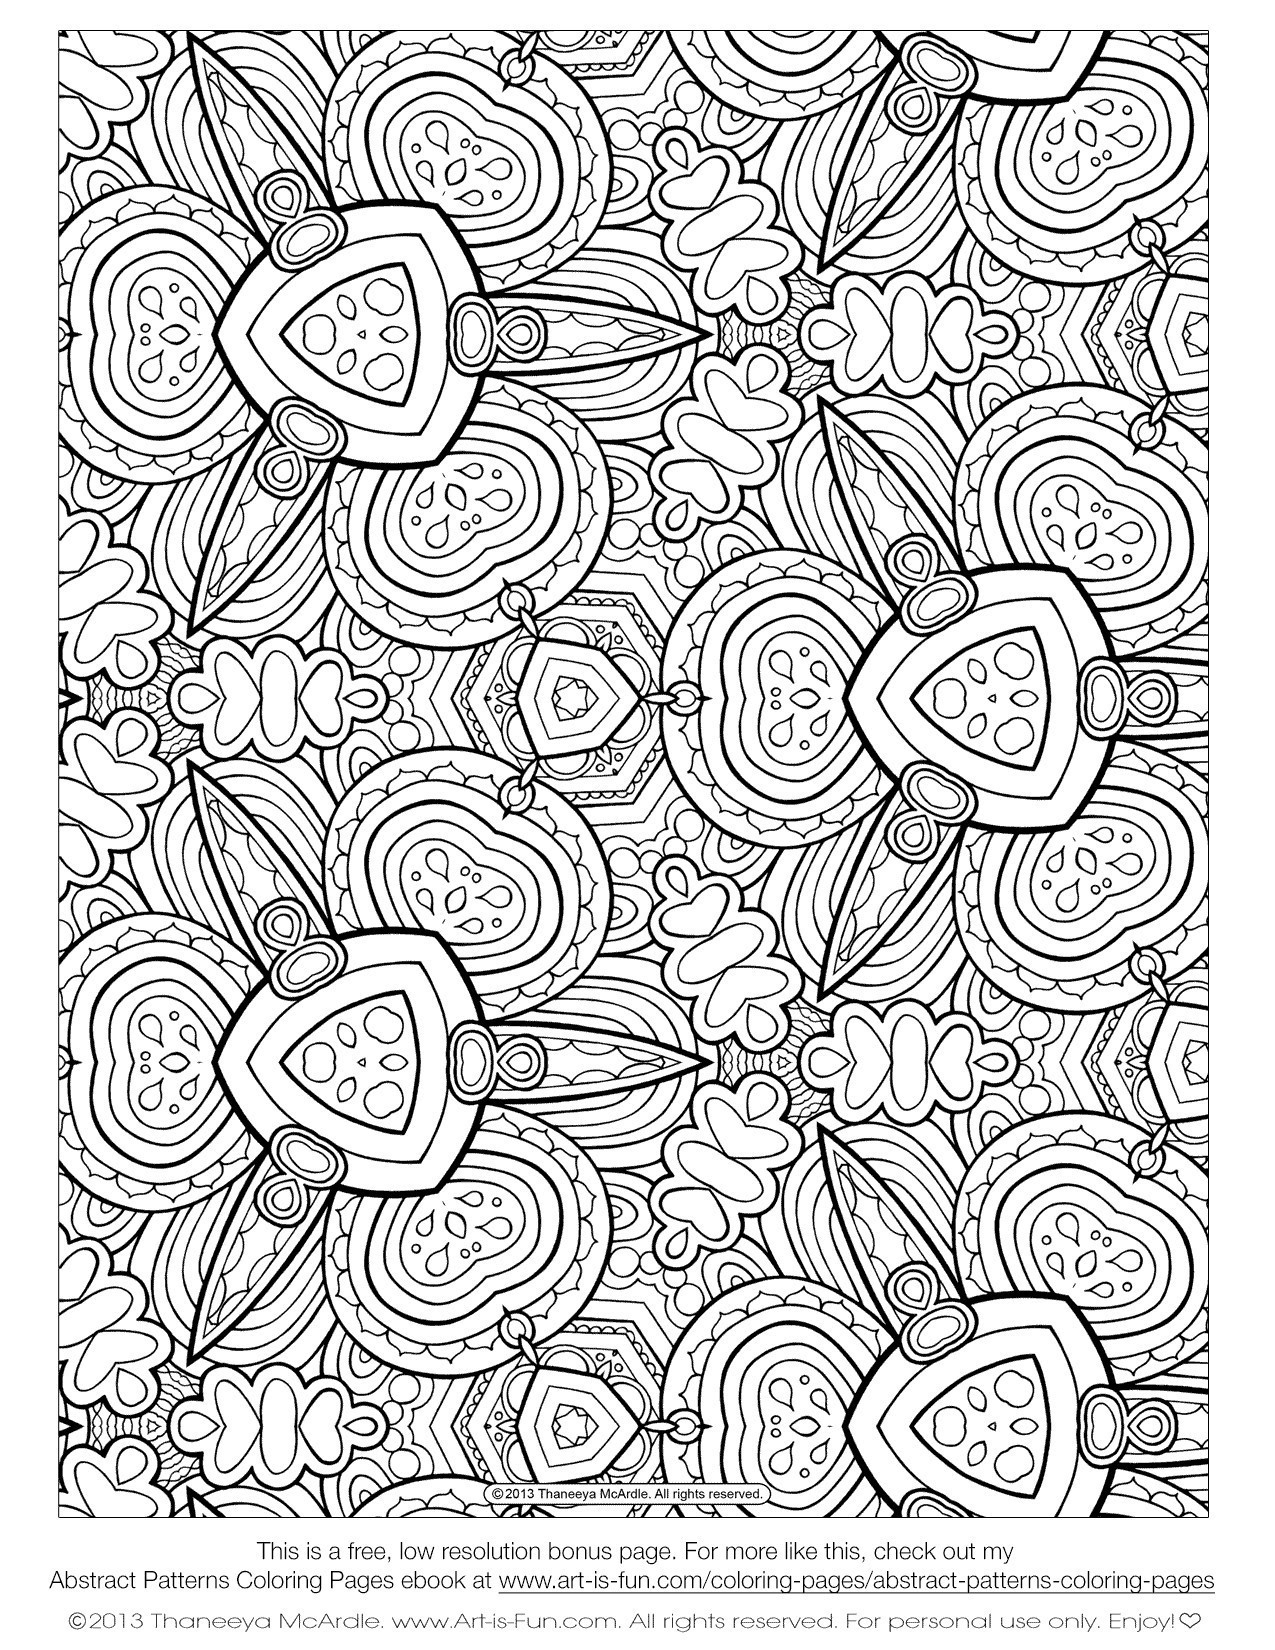 Coloring Pages : Free Printable Coloring Pages Adults Only Swear - Free Printable Coloring Pages For Adults Only Swear Words